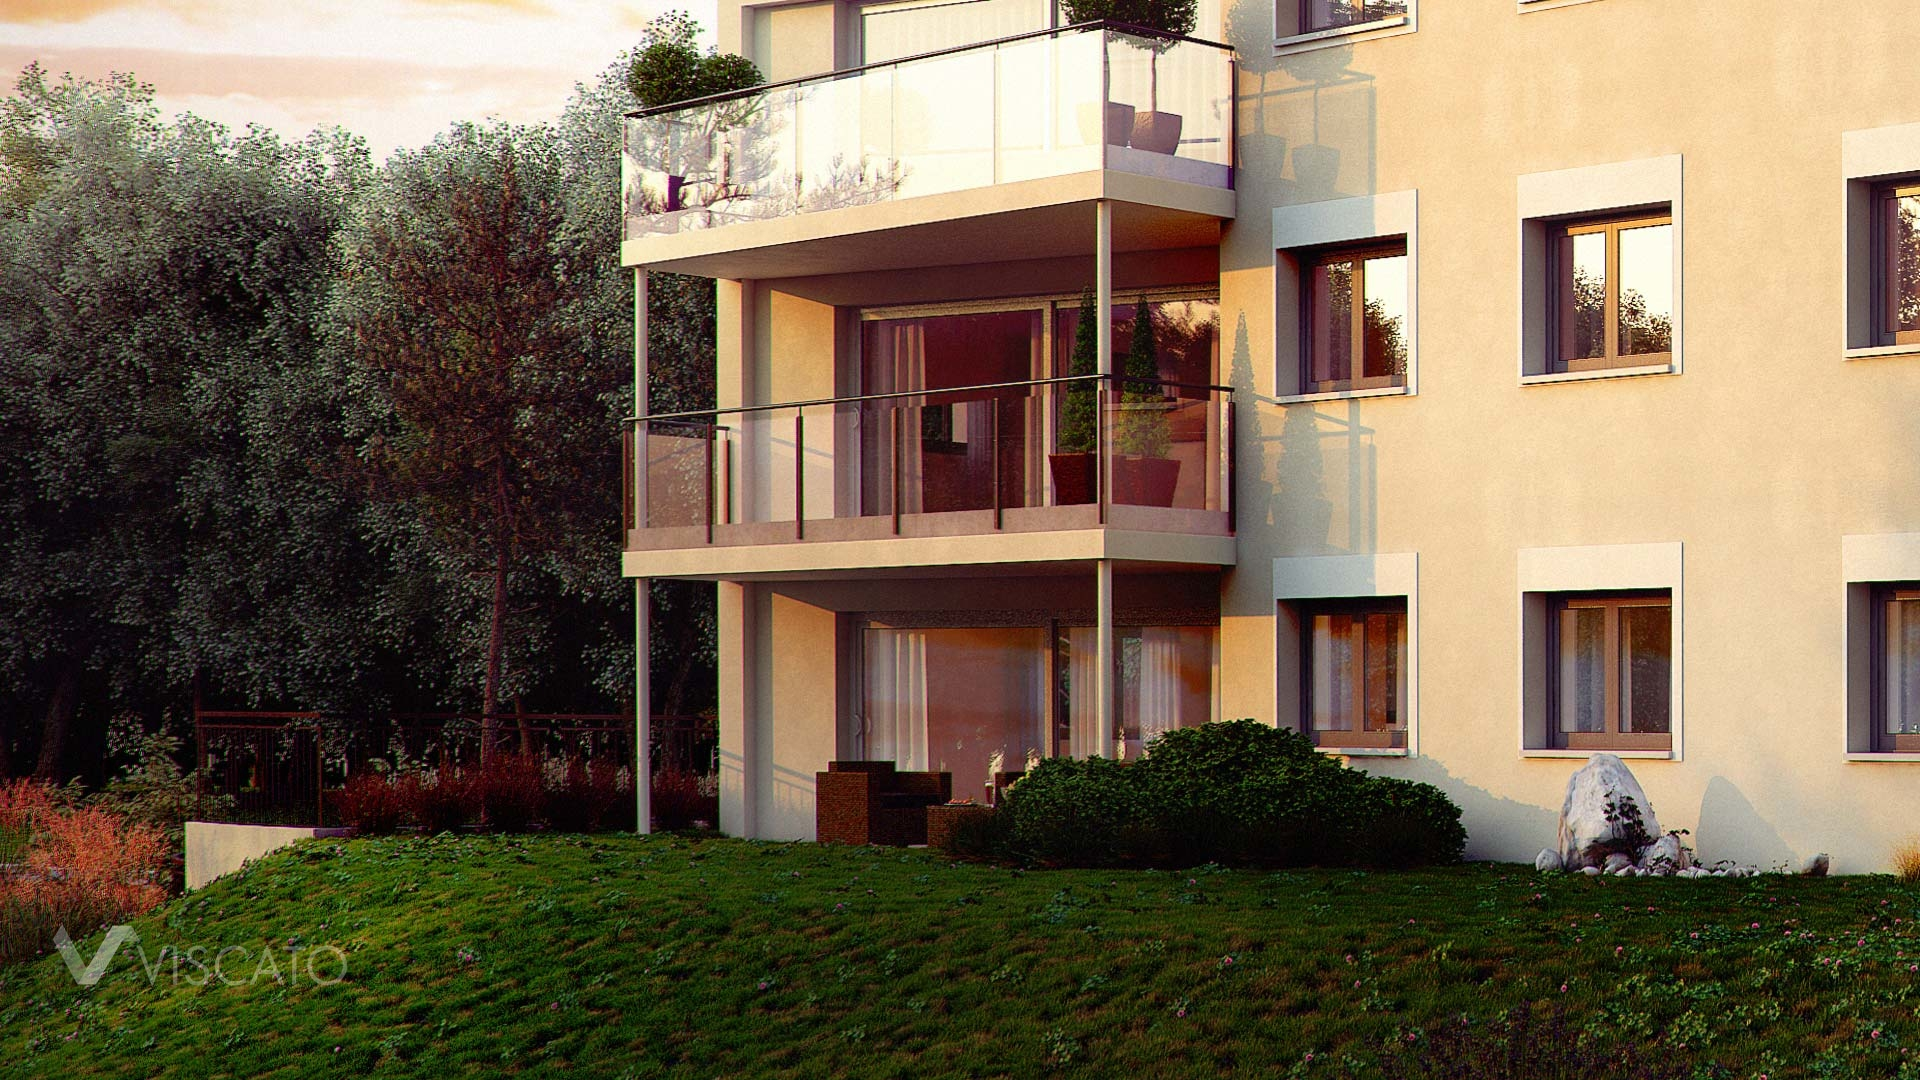 Sunset exterior visualization of multi family real estate detail with balconies